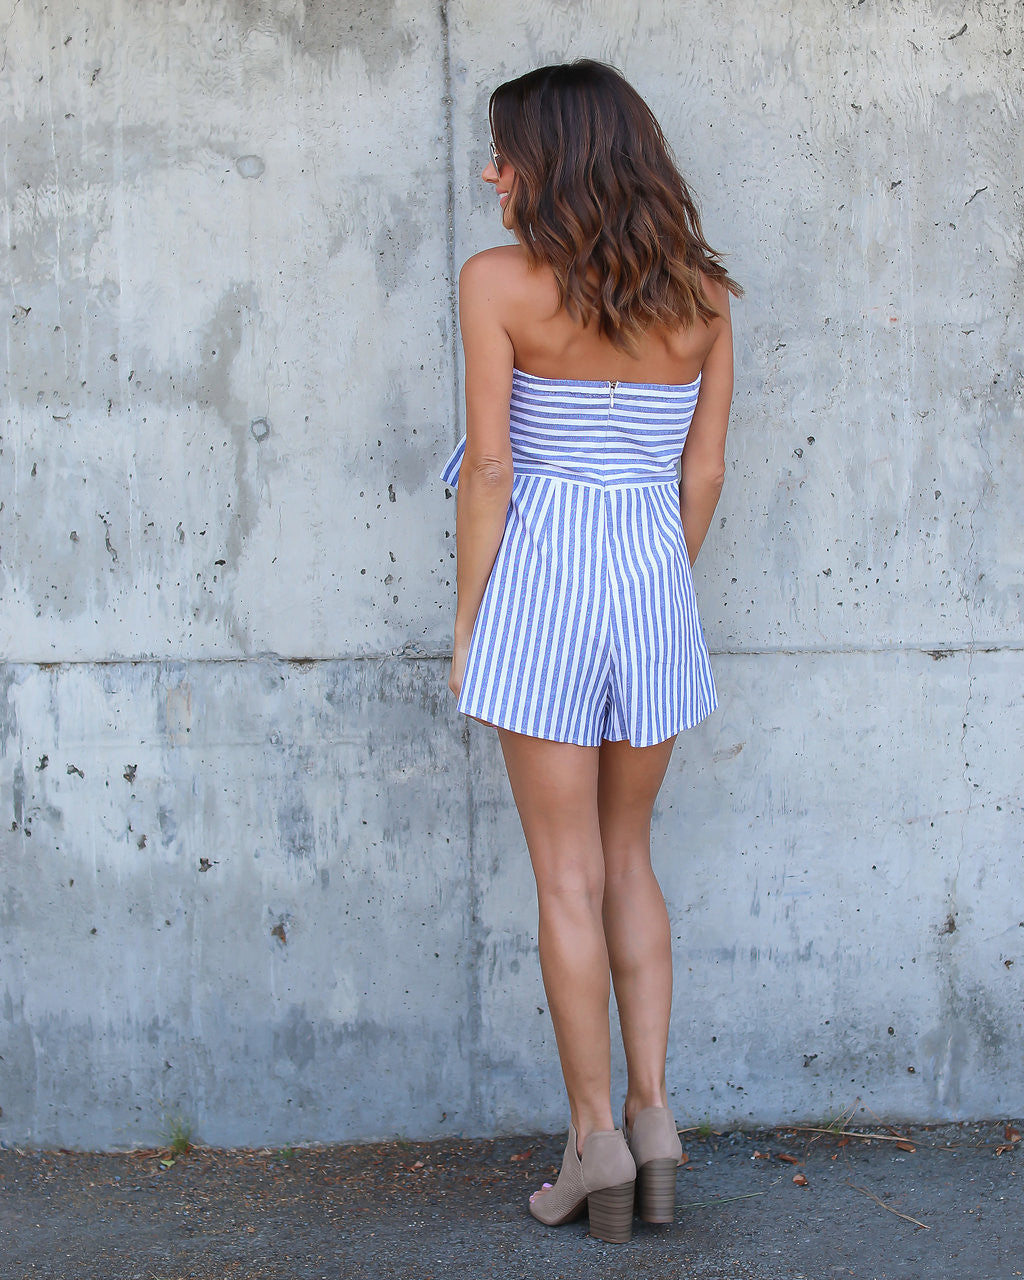 Lowe Striped Tie Romper - FINAL SALE